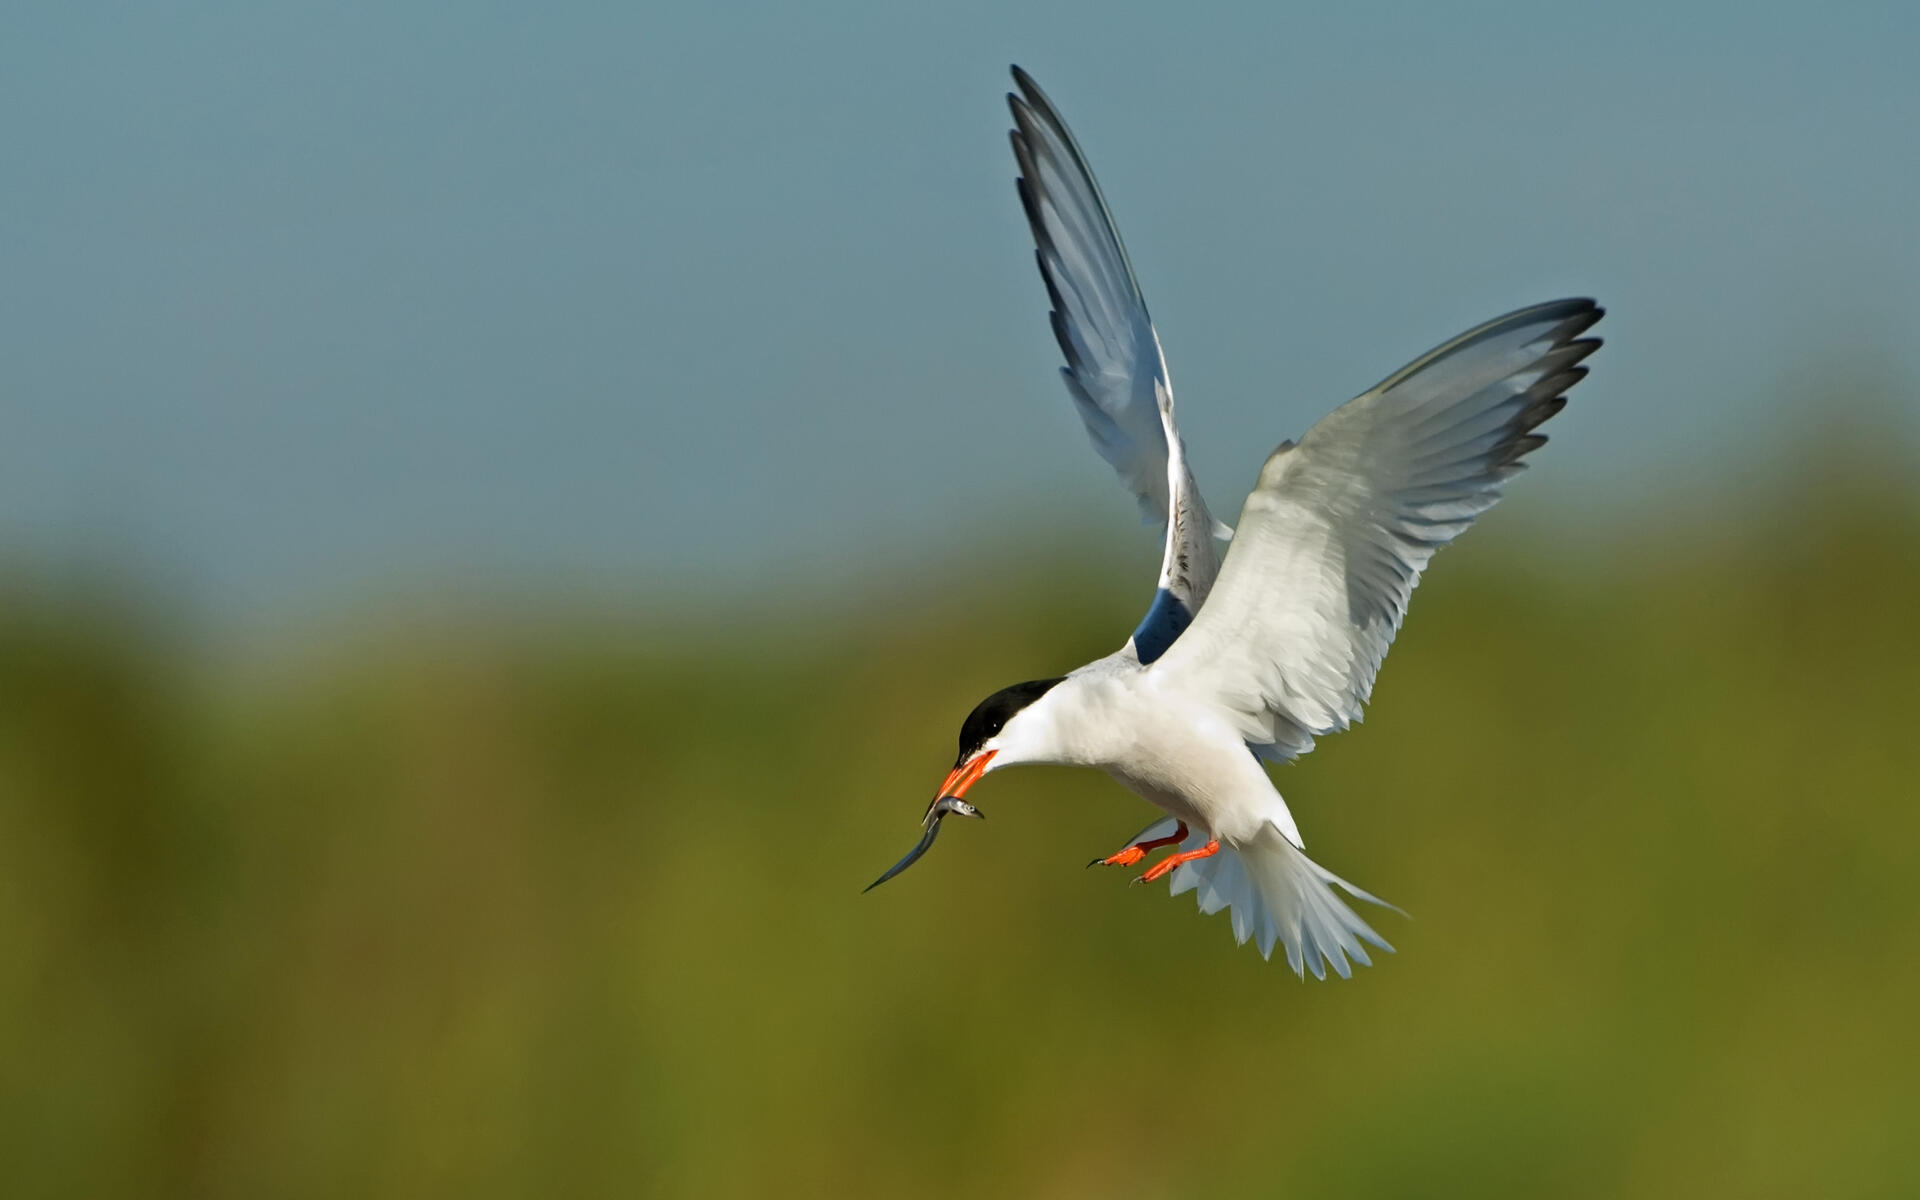 Old For Communities >> Common Tern | Audubon Field Guide